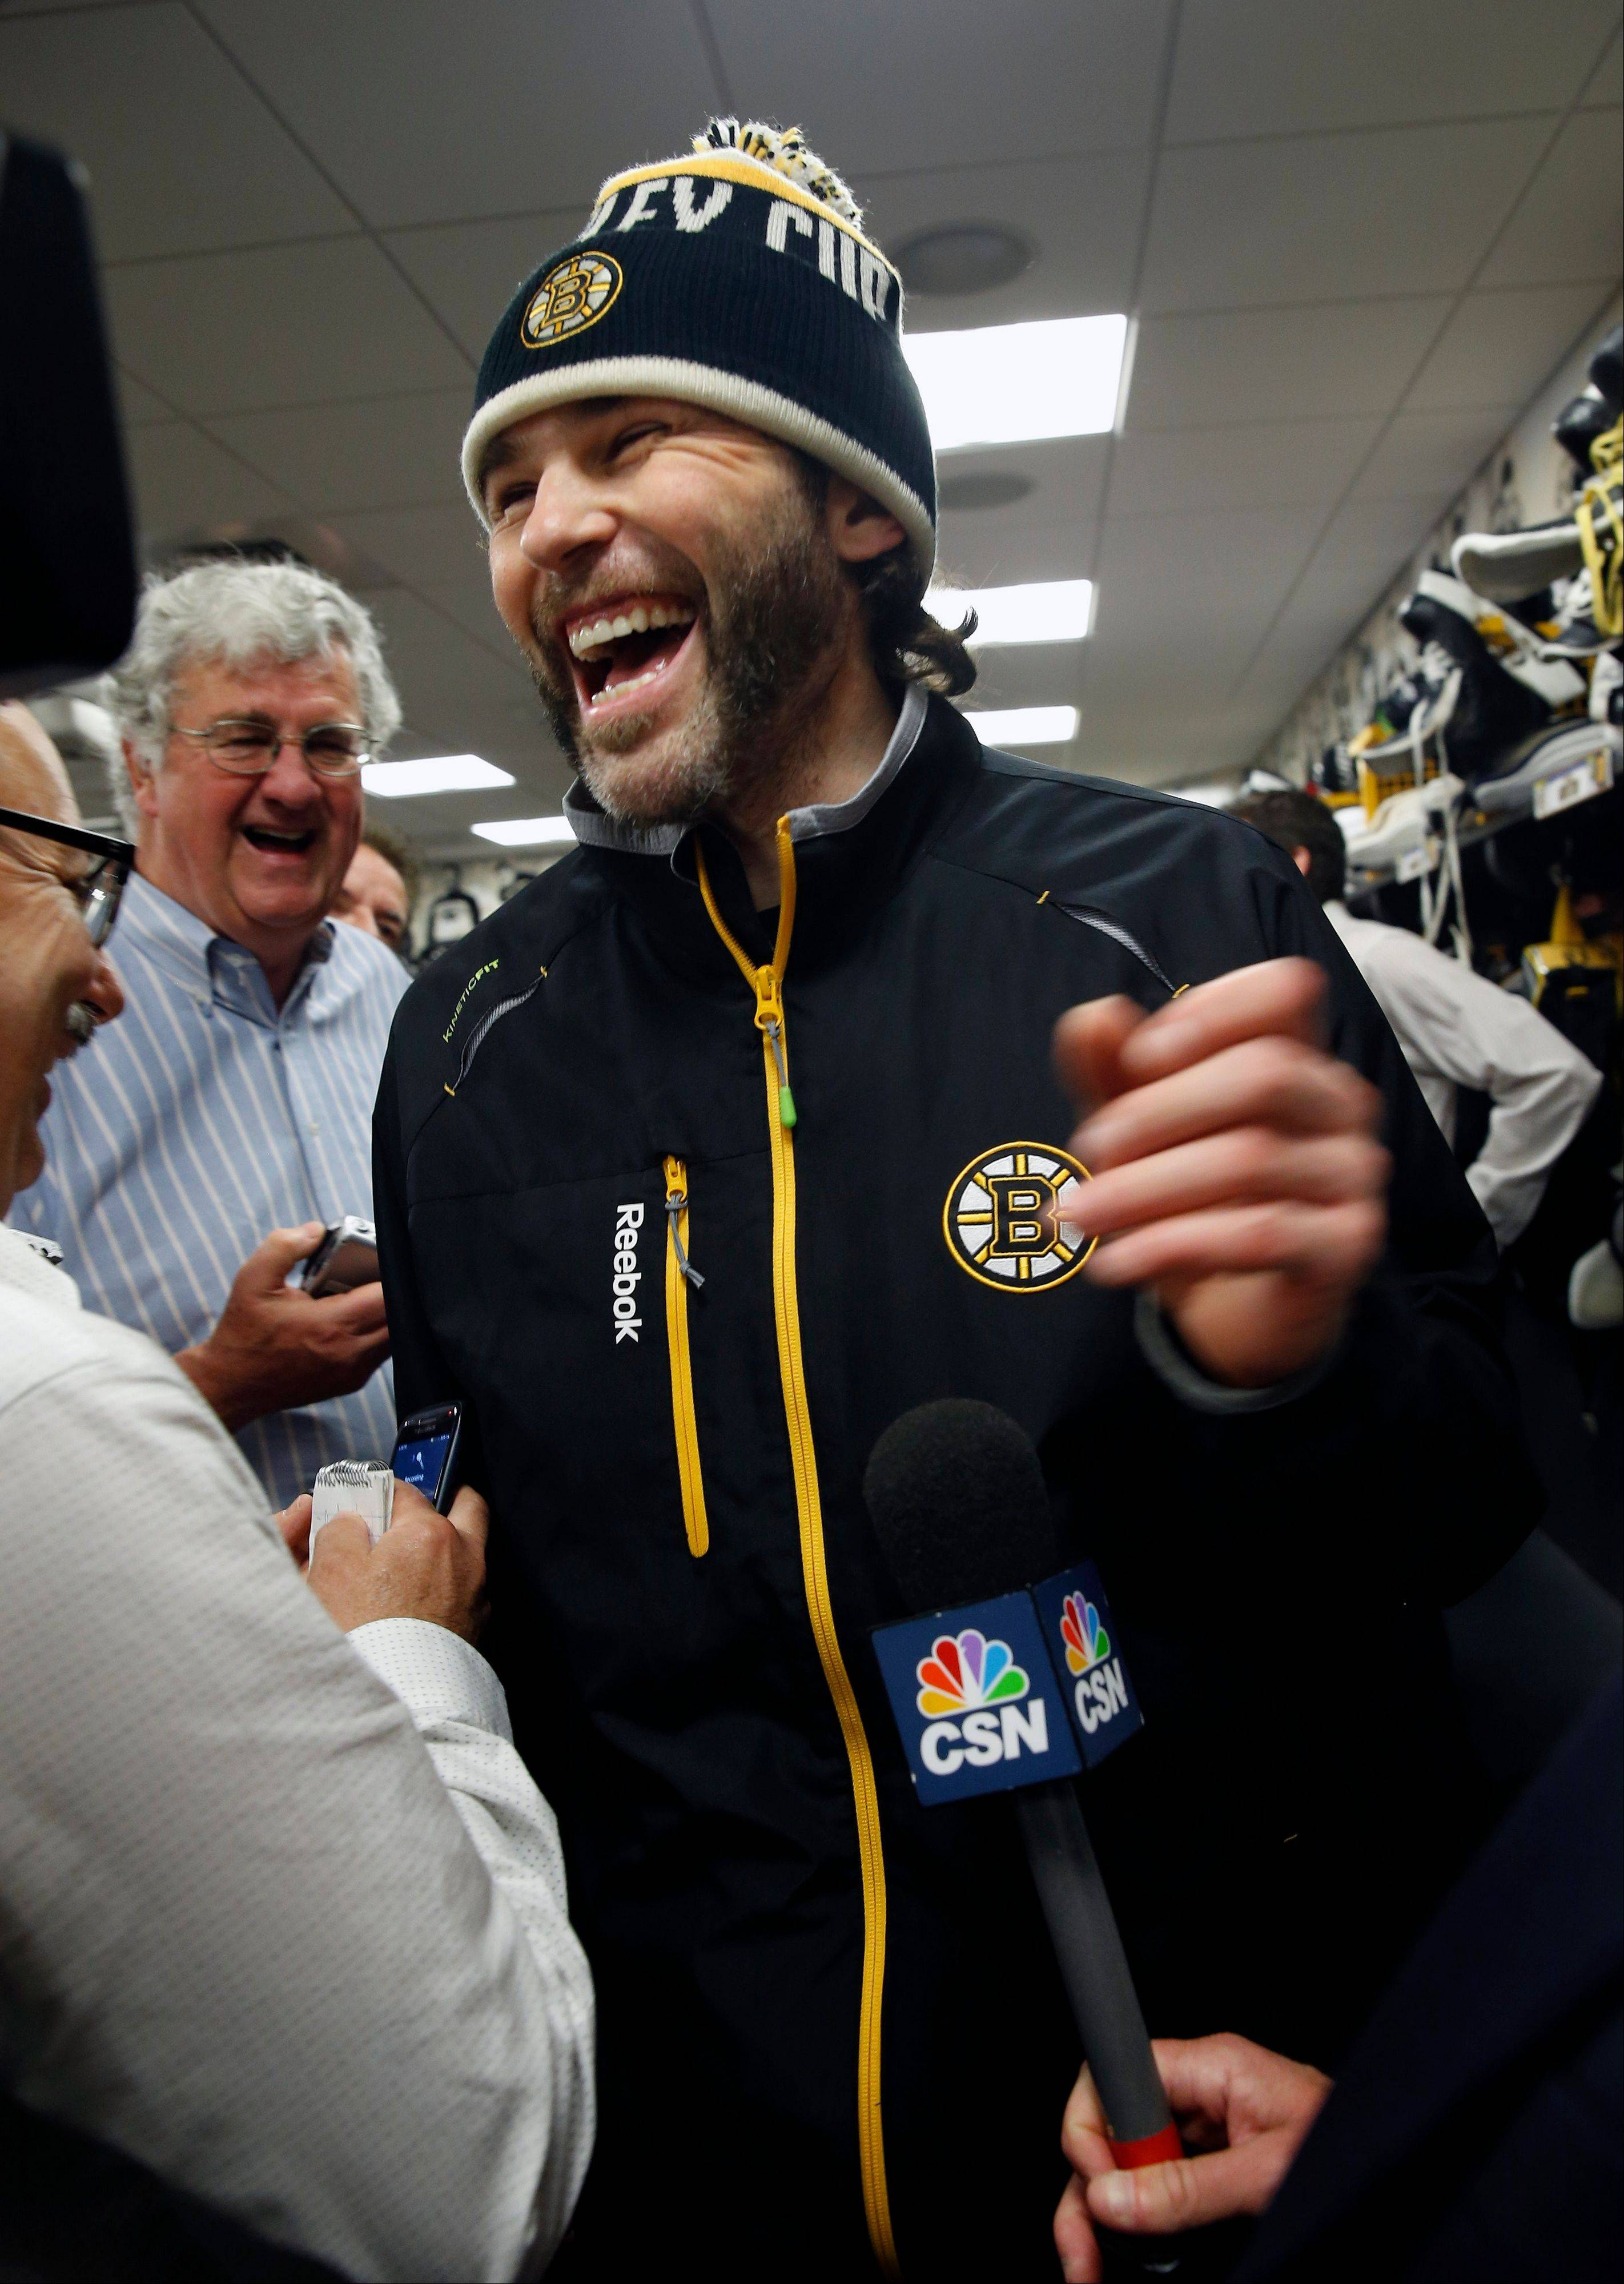 The Bruins� Jaromir Jagr was 20 years old and playing for Pittsburgh in 1992 when the Penguins swept the Blackhawks in the Stanley Cup Finals.